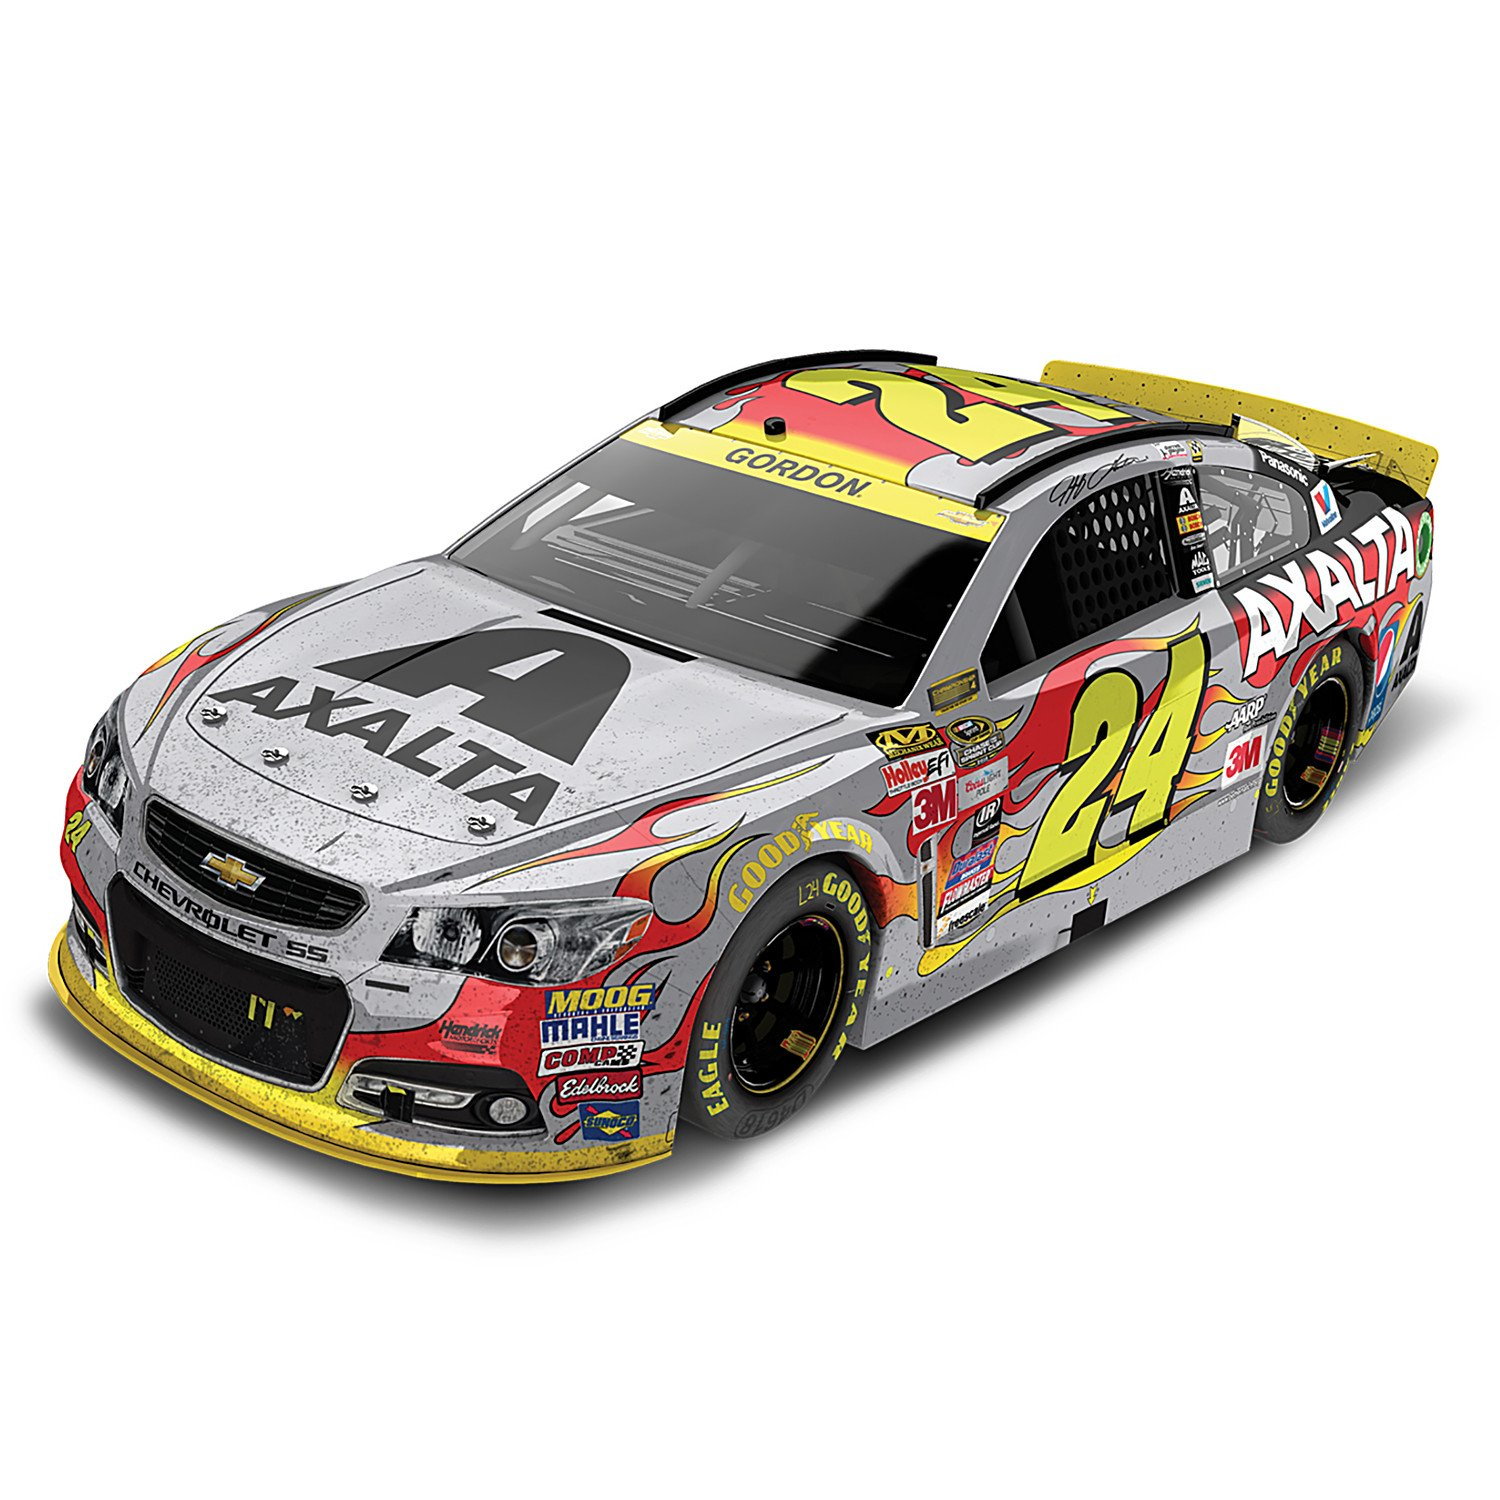 2015 NASCAR Jeff Gordon No 24 Axalta Homestead 1:24 Scale Diecast Car by The Hamilton Collection